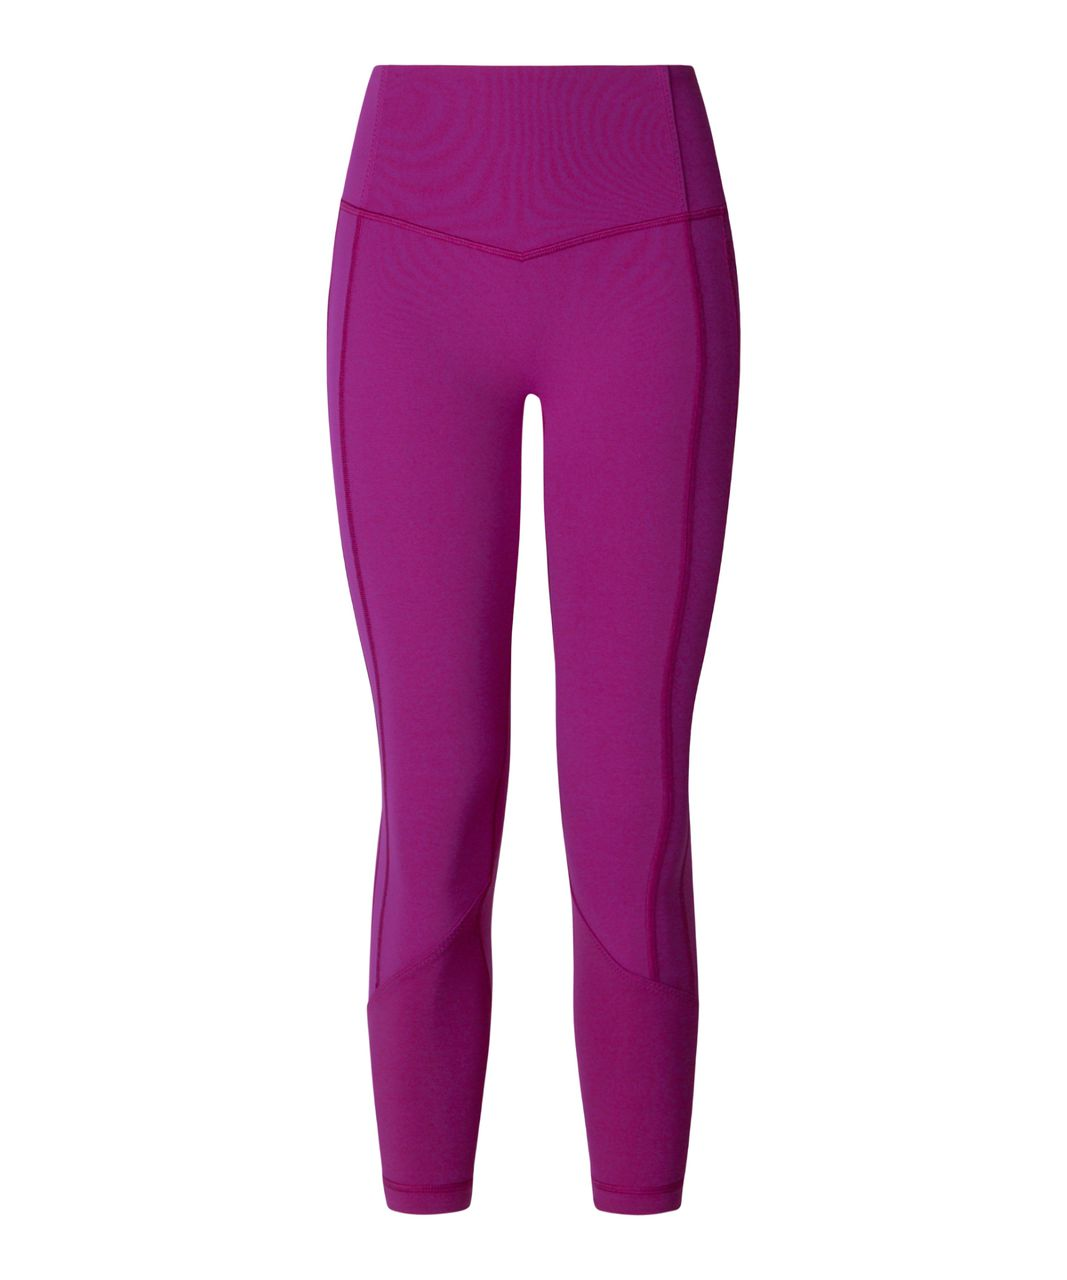 Lululemon All The Right Places Crop II - Regal Plum